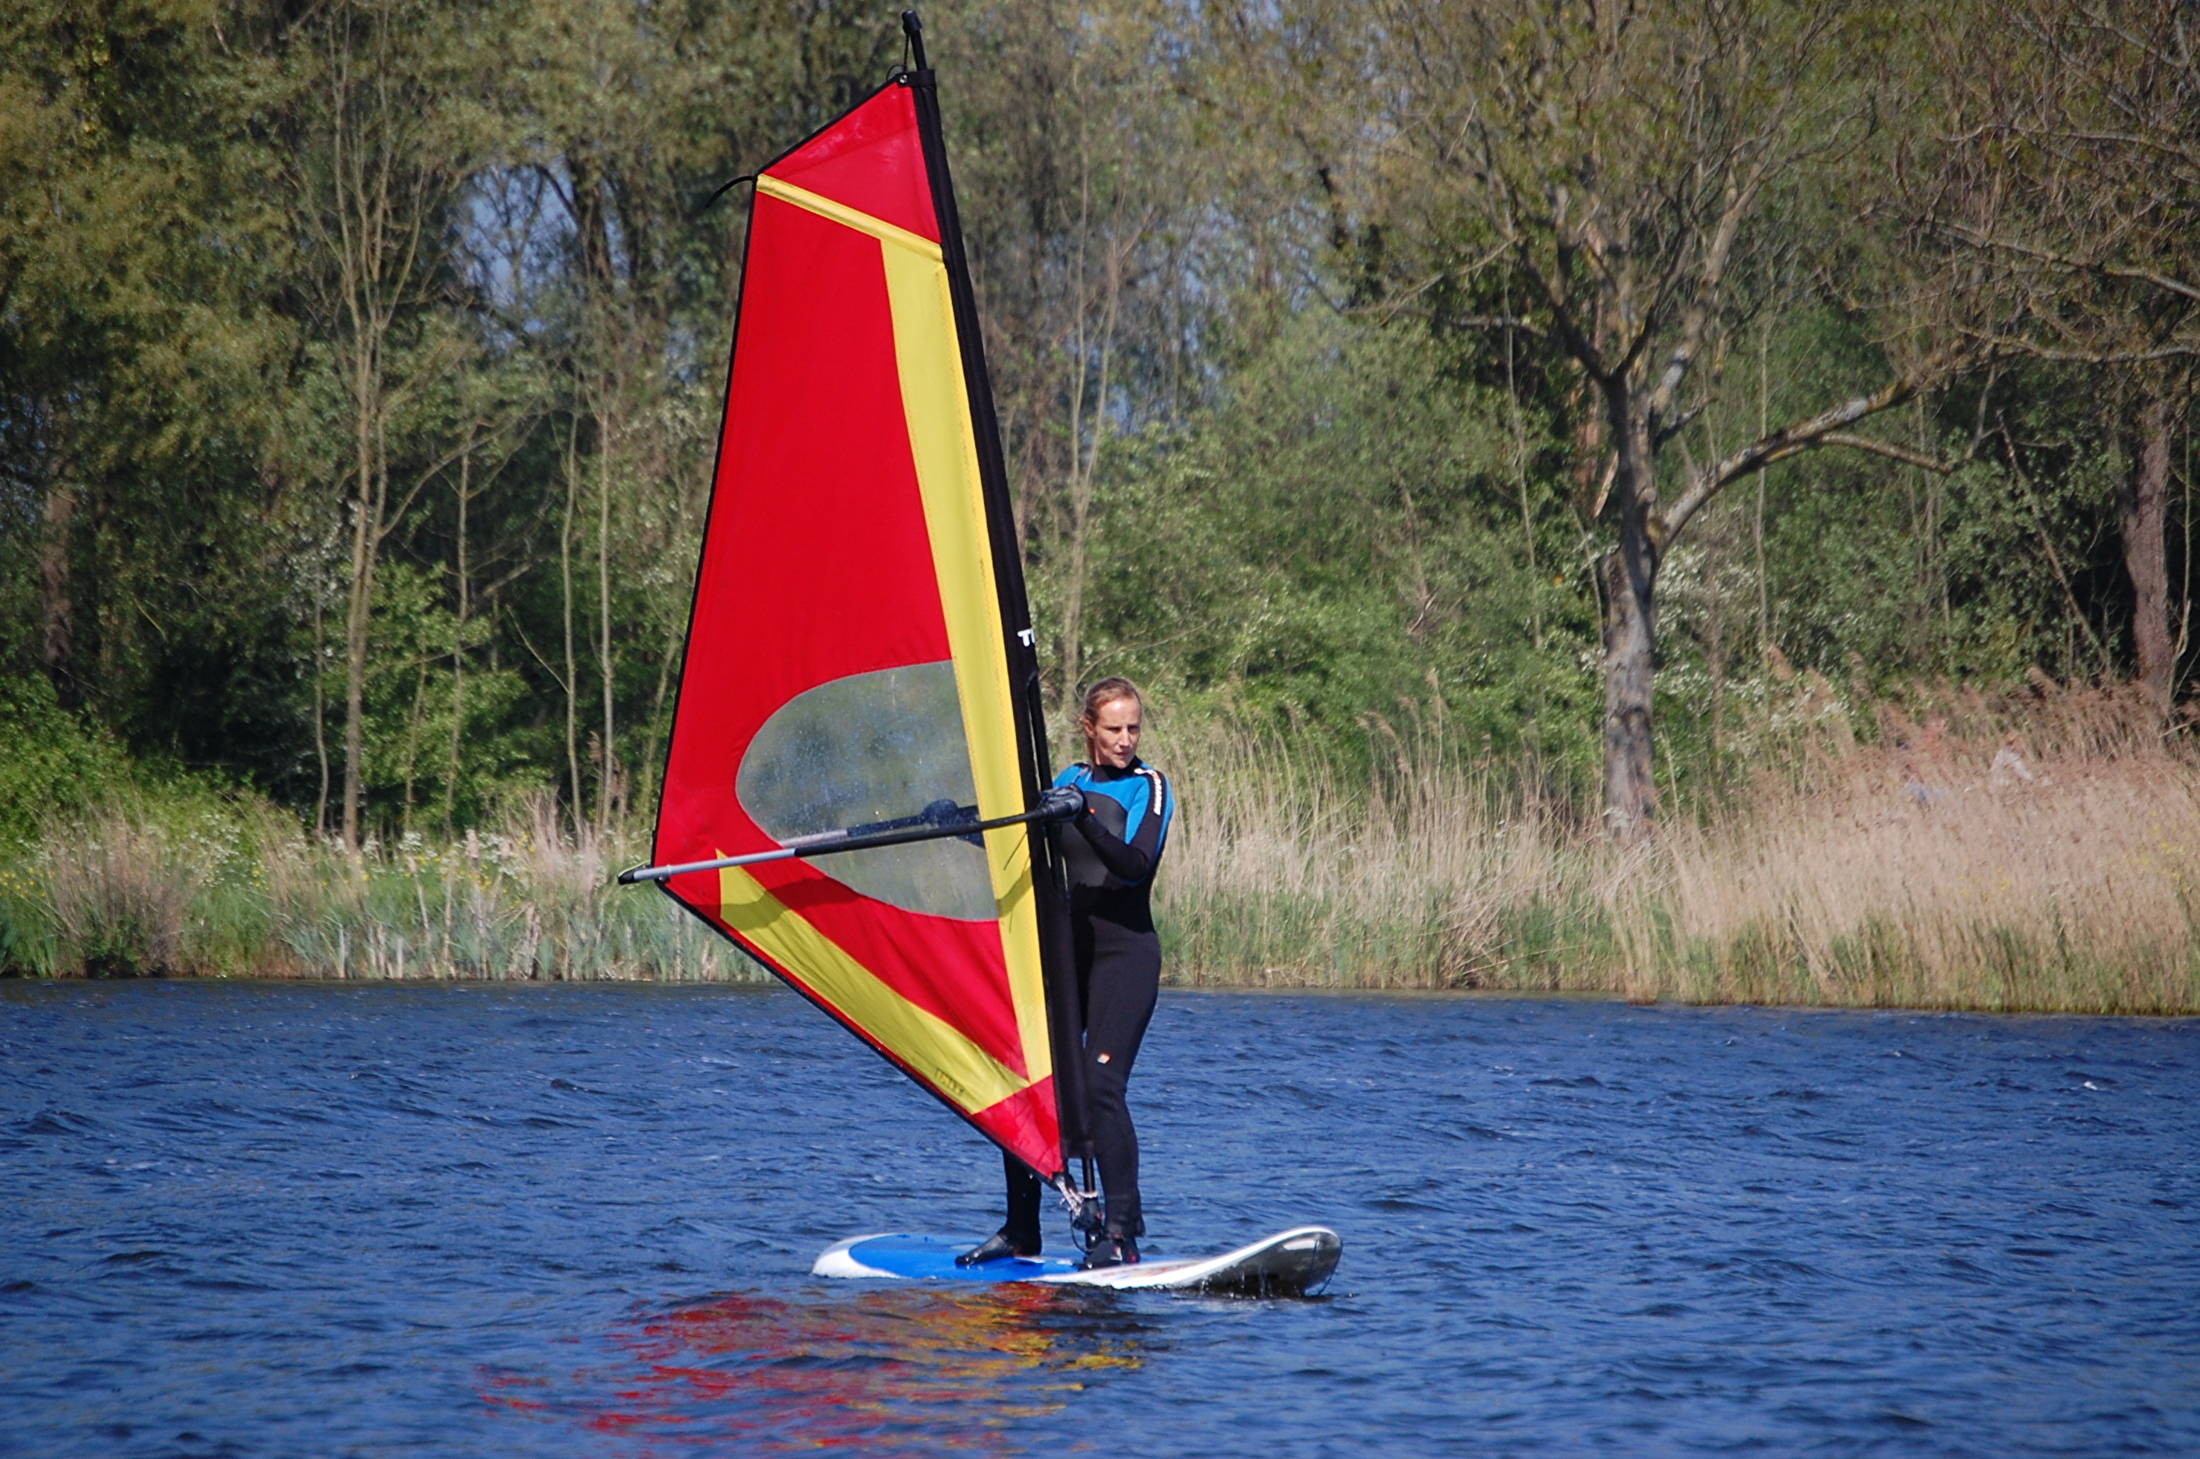 Privéles windsurfen